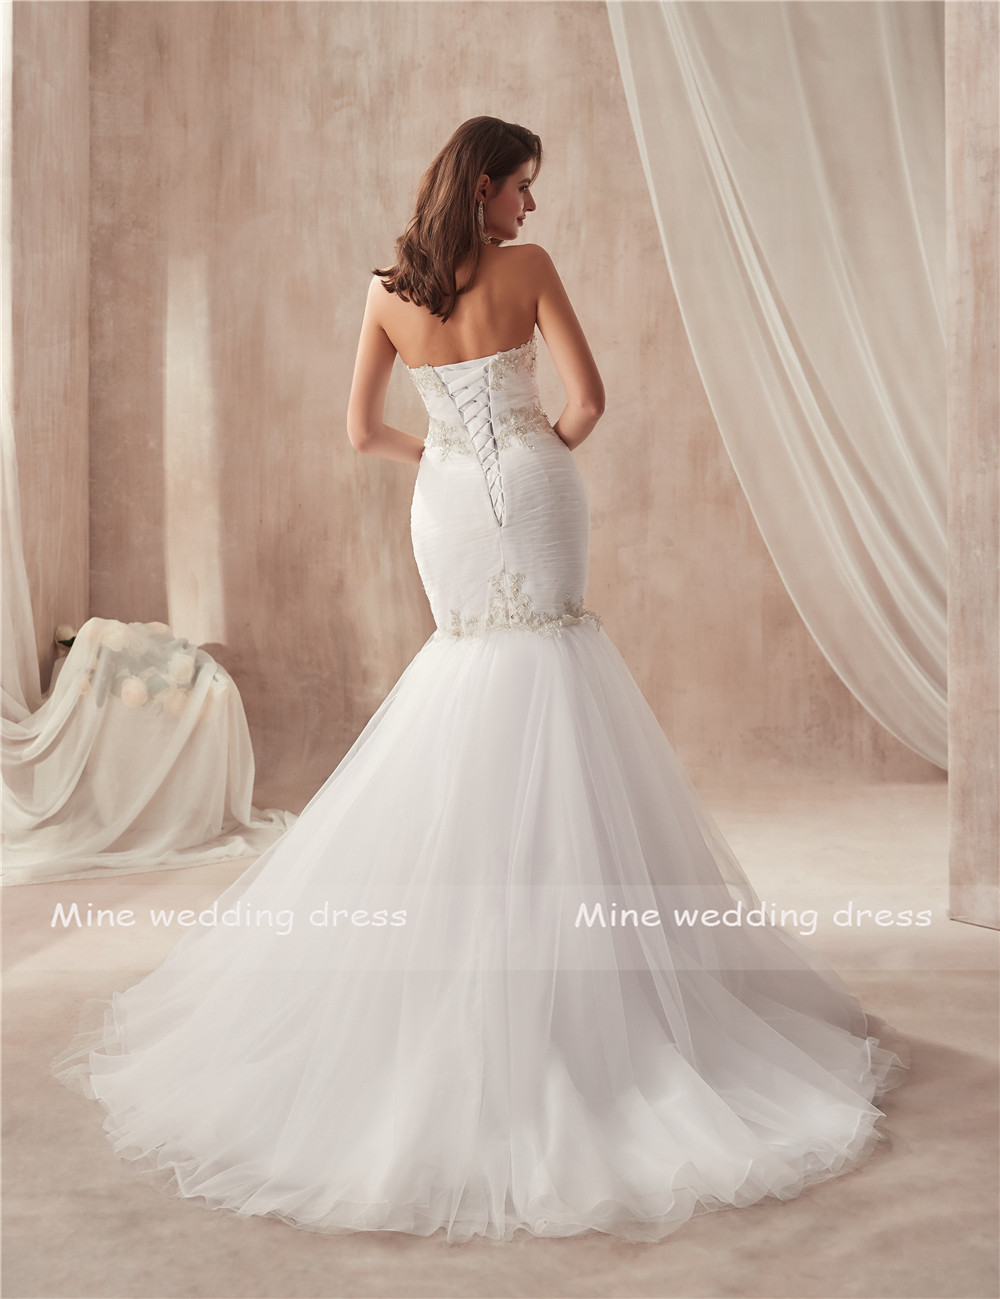 Image 4 - vestido de festa de casamento Strapless Ruched Tulle Slim Sexy Mermaid Wedding Dress with Silver Lace Applique Bridal Gowns-in Wedding Dresses from Weddings & Events